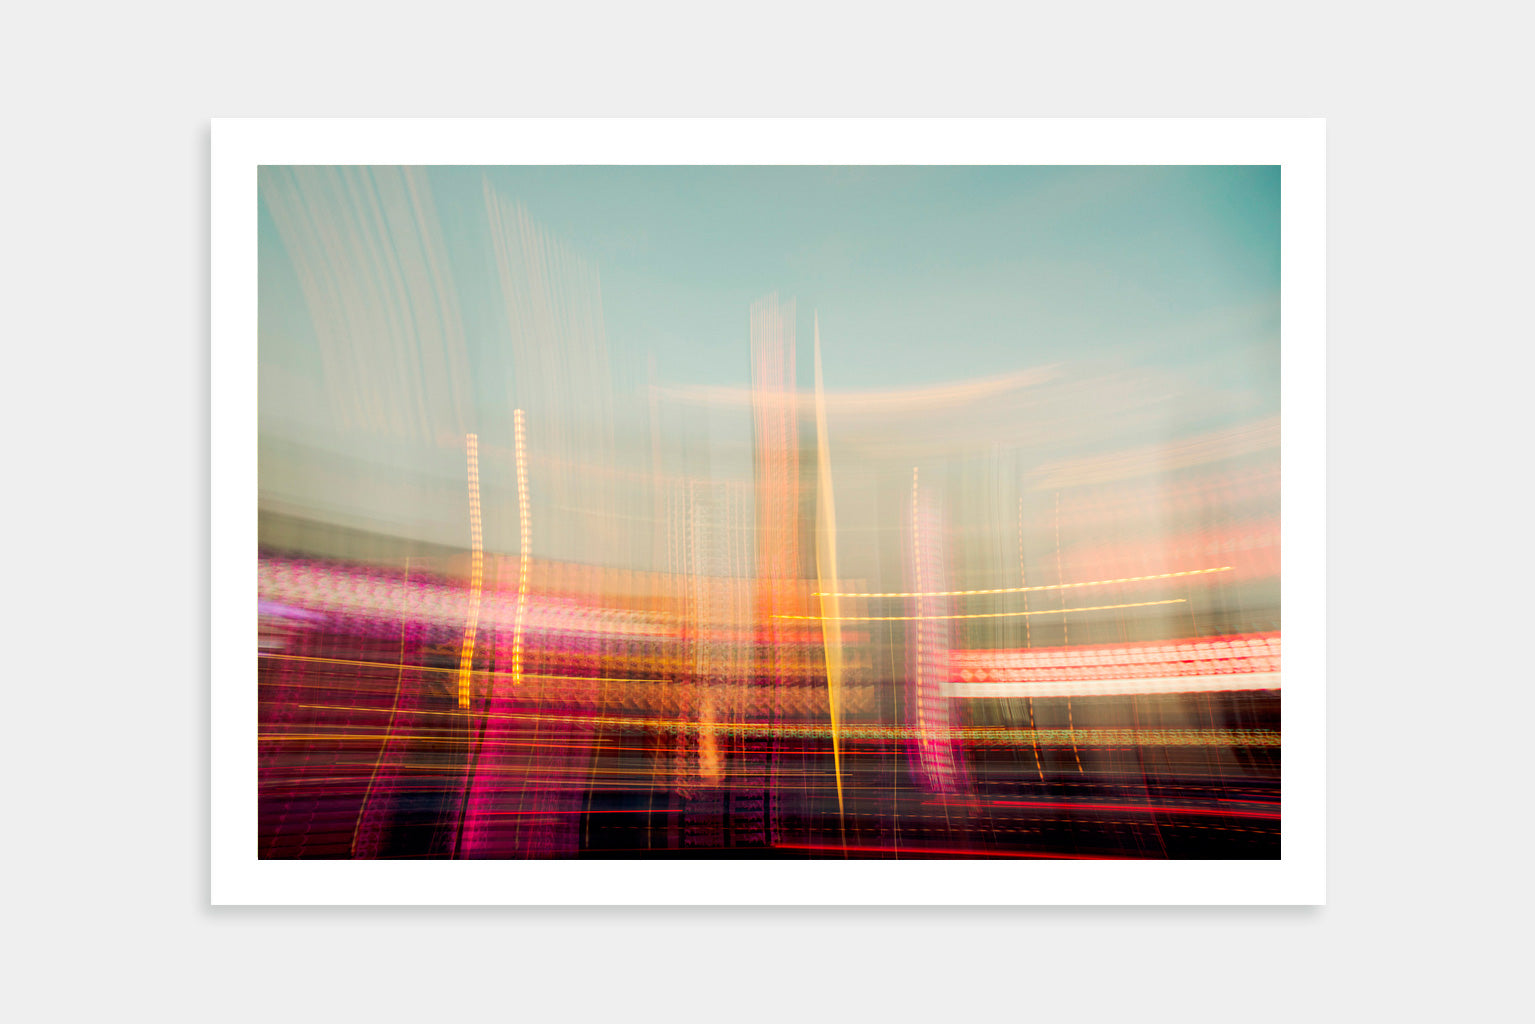 abstract city art for sale